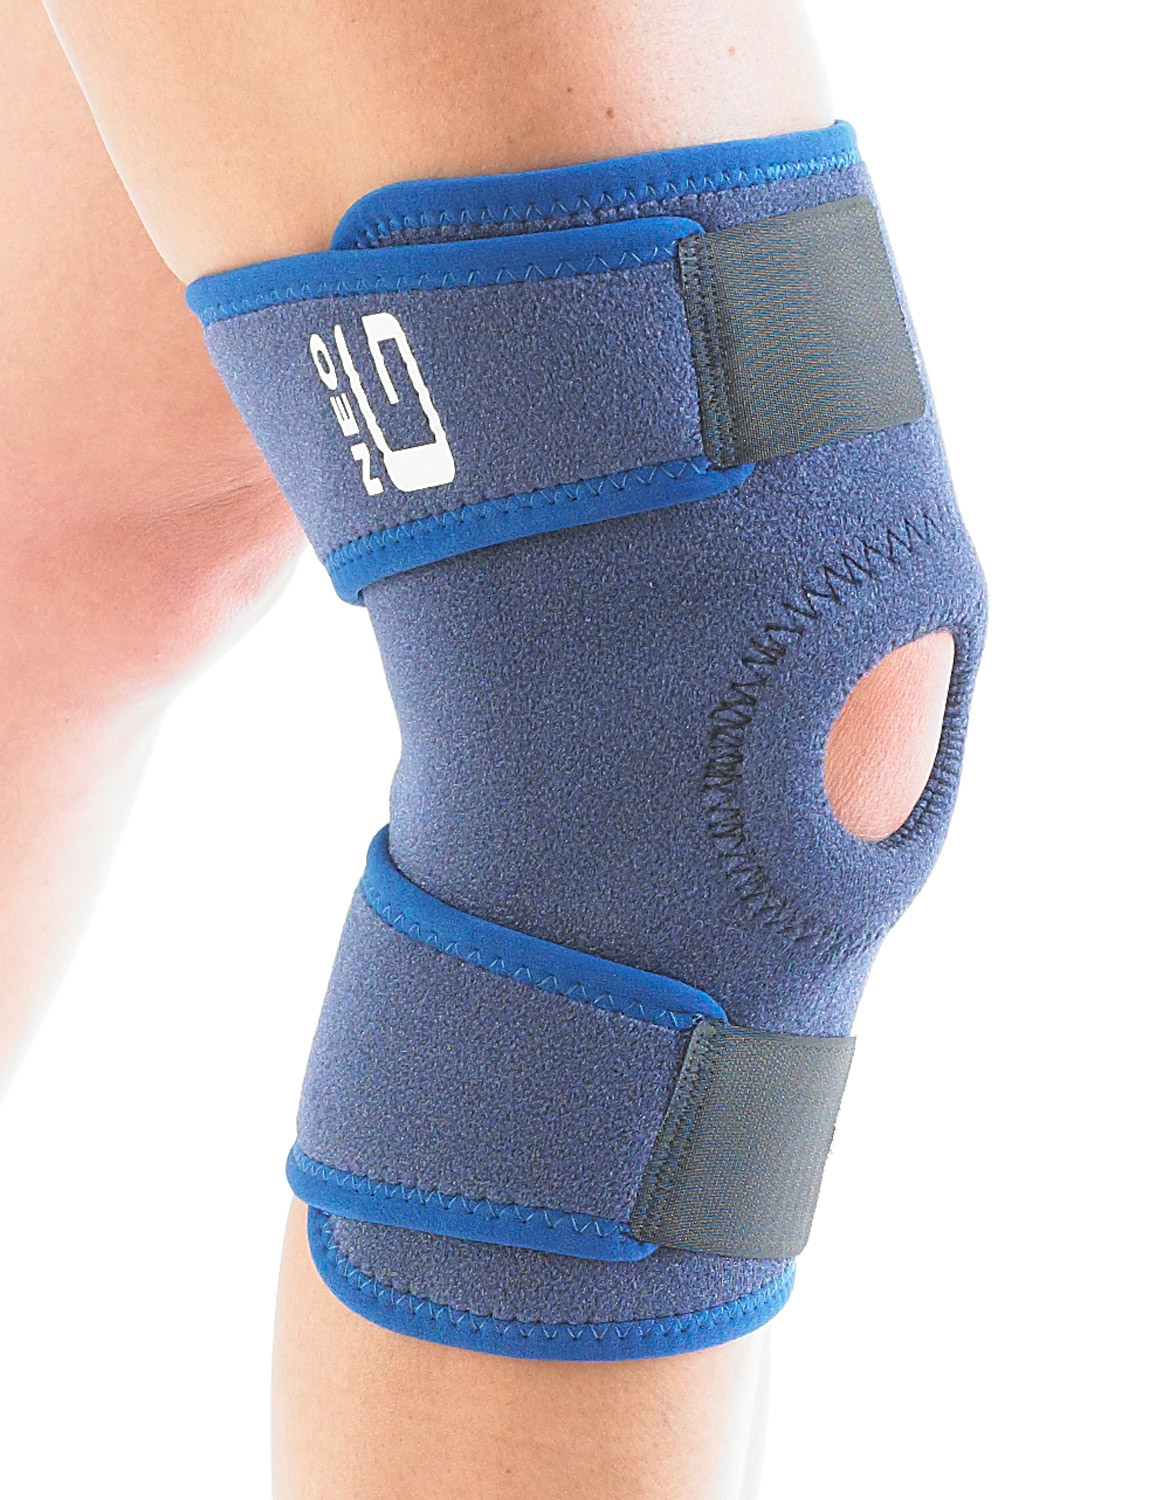 885 - OPEN KNEE SUPPORT  The open patella design with stitched buttress helps with patellar tracking whilst providing added support and helping with overall stability by eliminating glide and twisting at the knee.